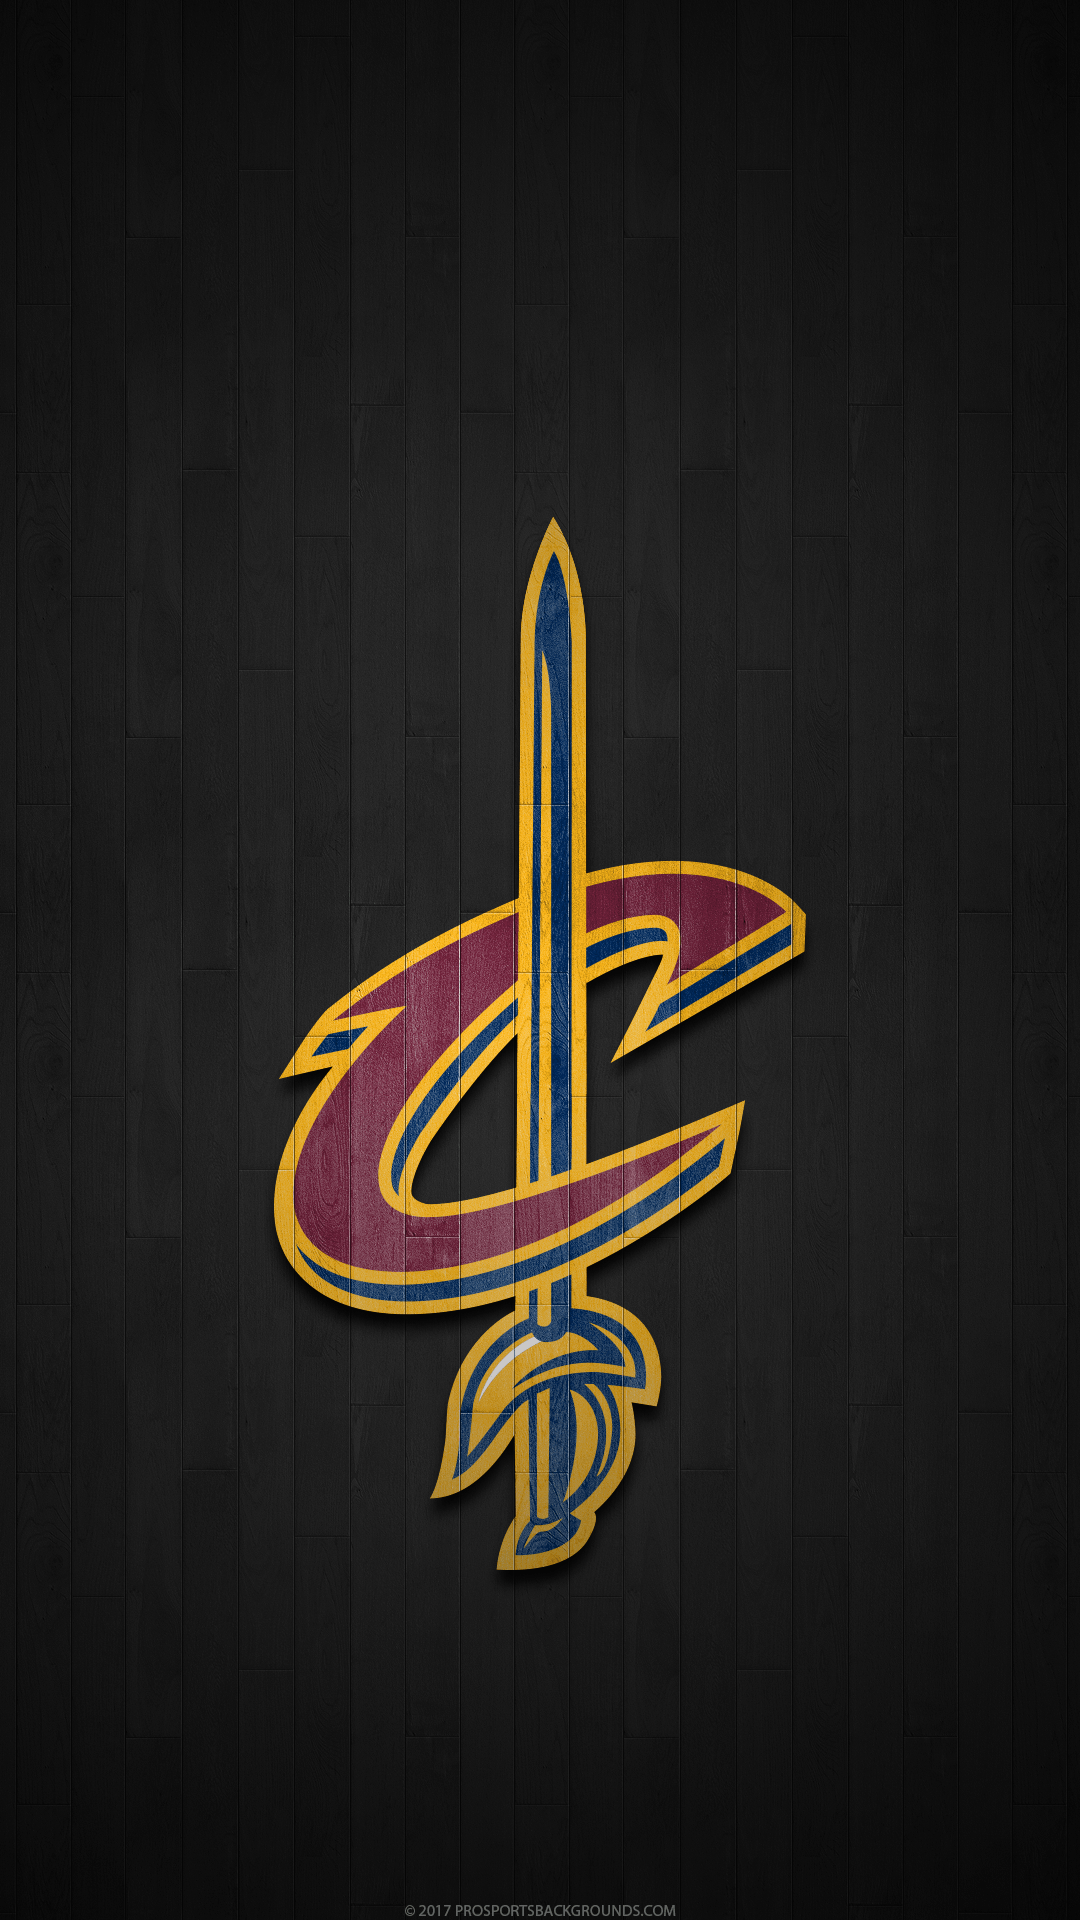 Cleveland cavaliers 2017 wallpapers wallpaper cave - Cleveland cavaliers wallpaper ...